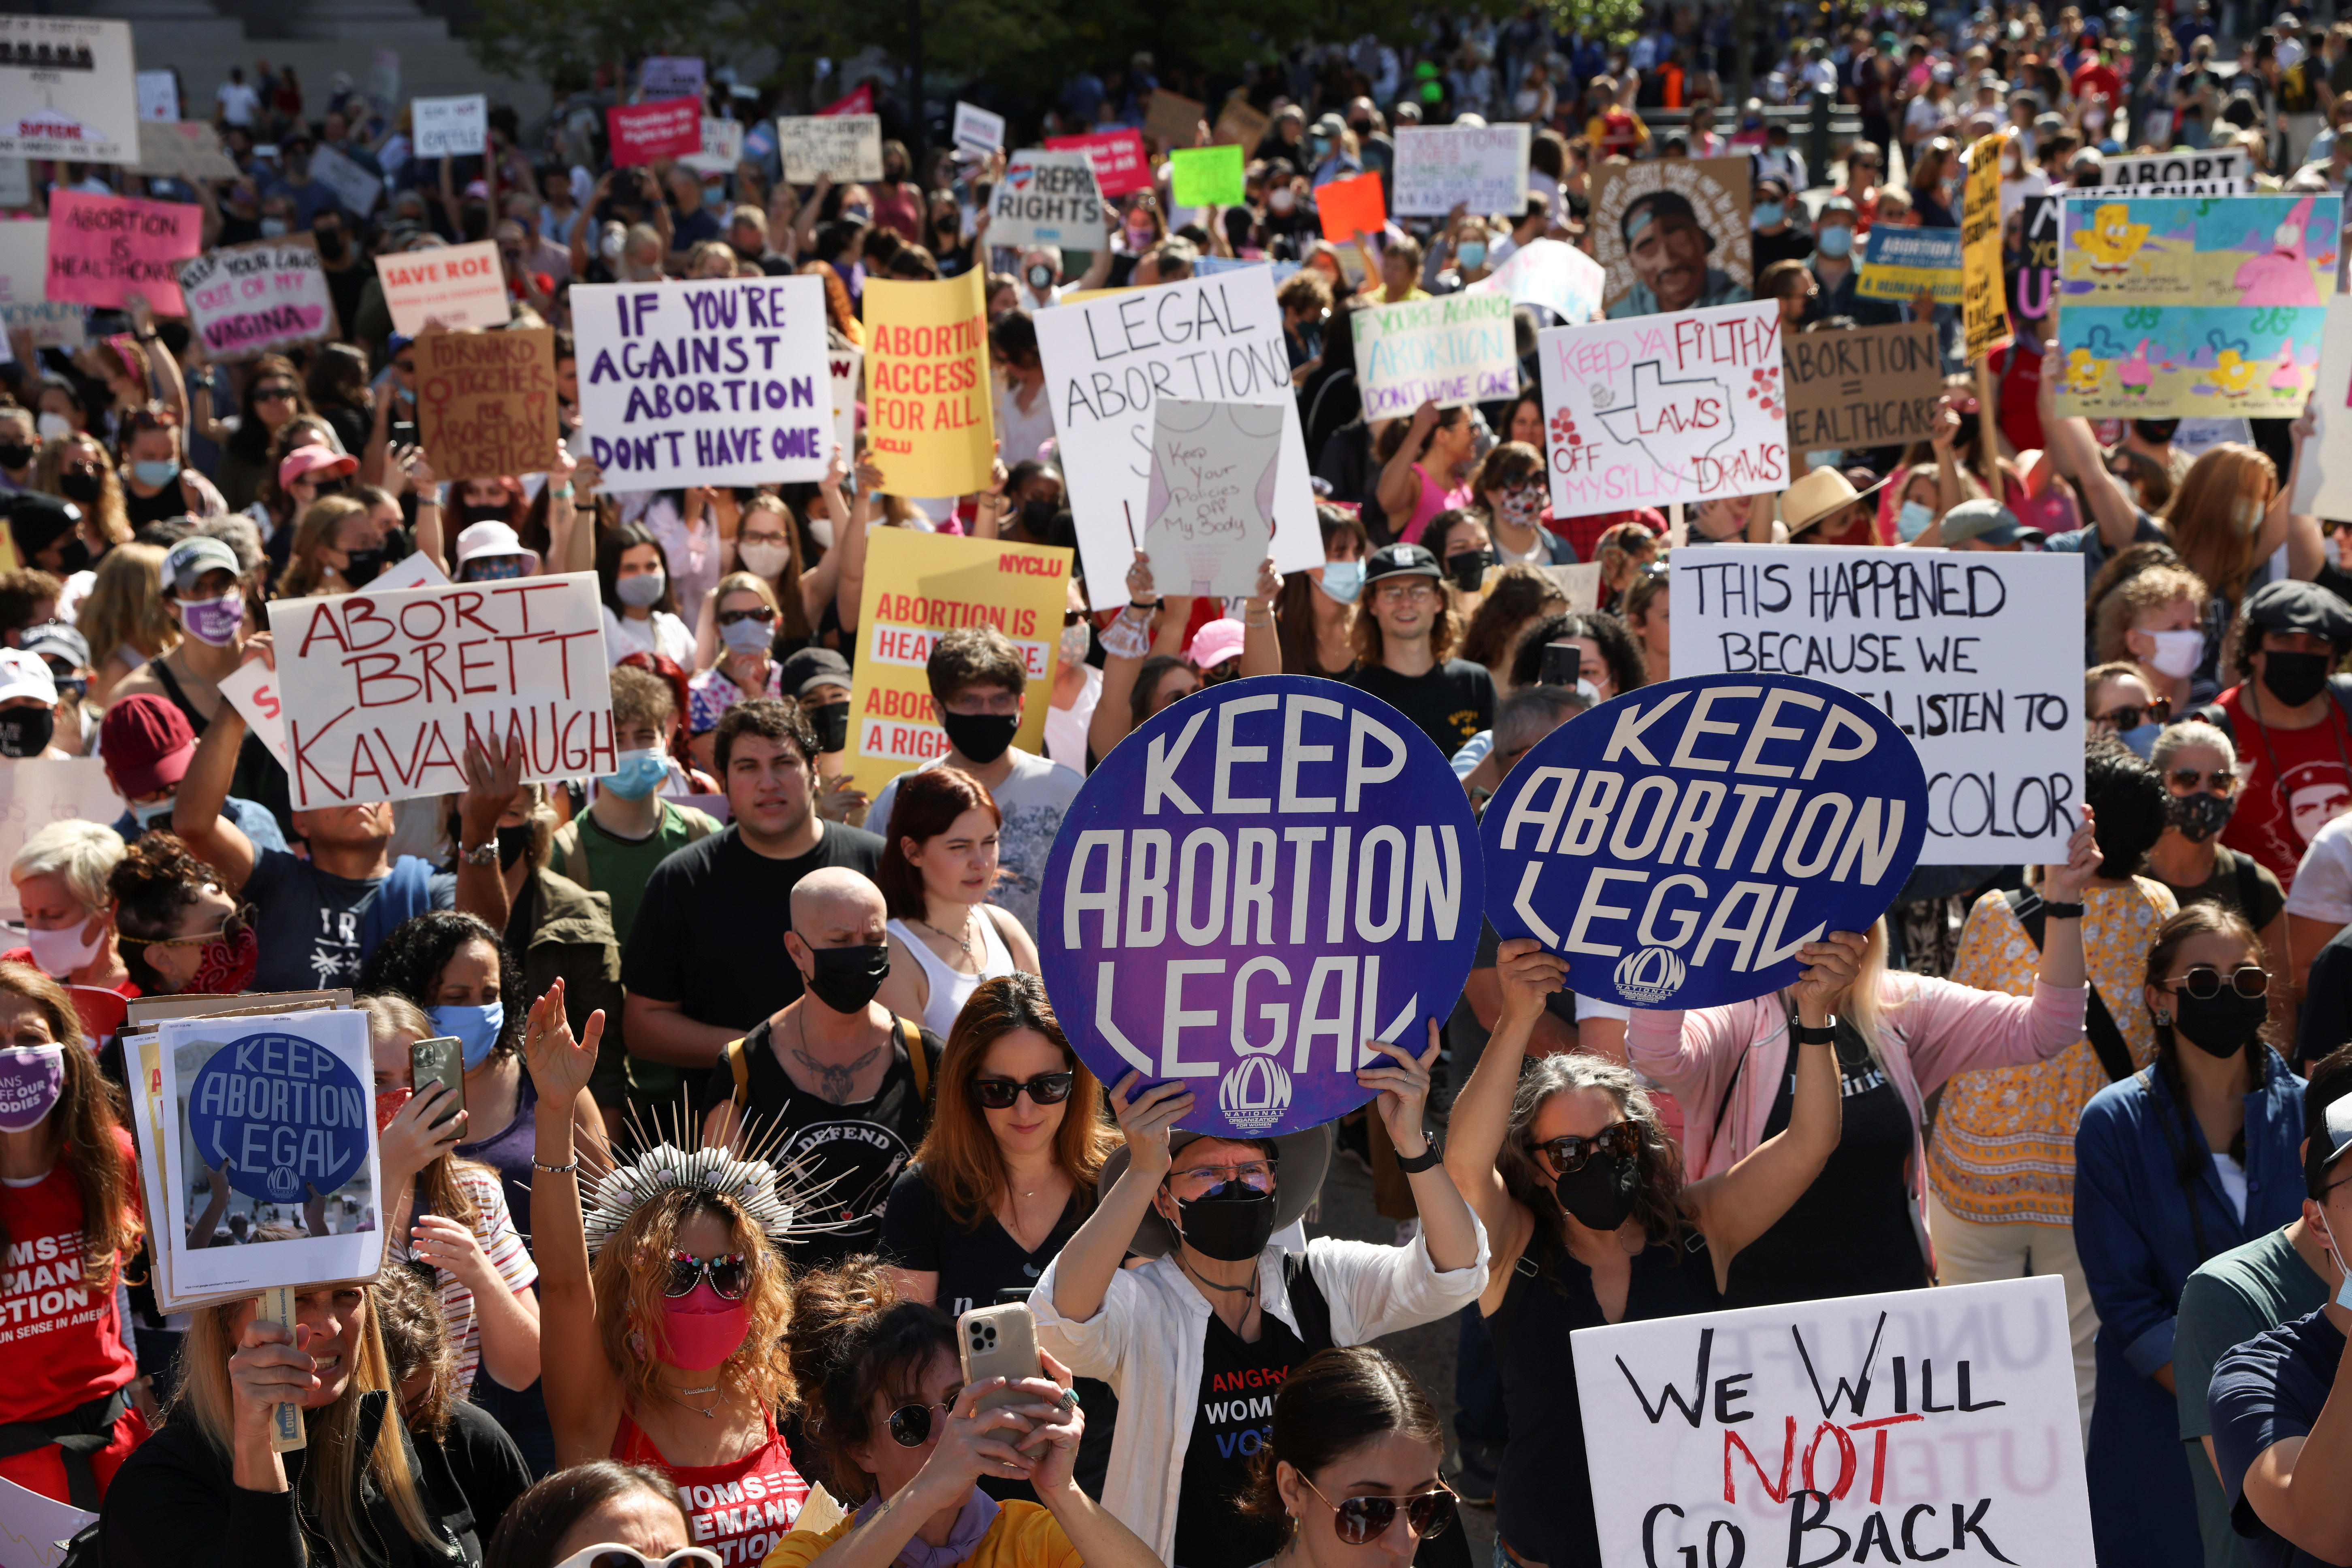 Supporters of reproductive choice take part in the nationwide Women's March in New York City, New York. October 2, 2021. REUTERS/Caitlin Ochs